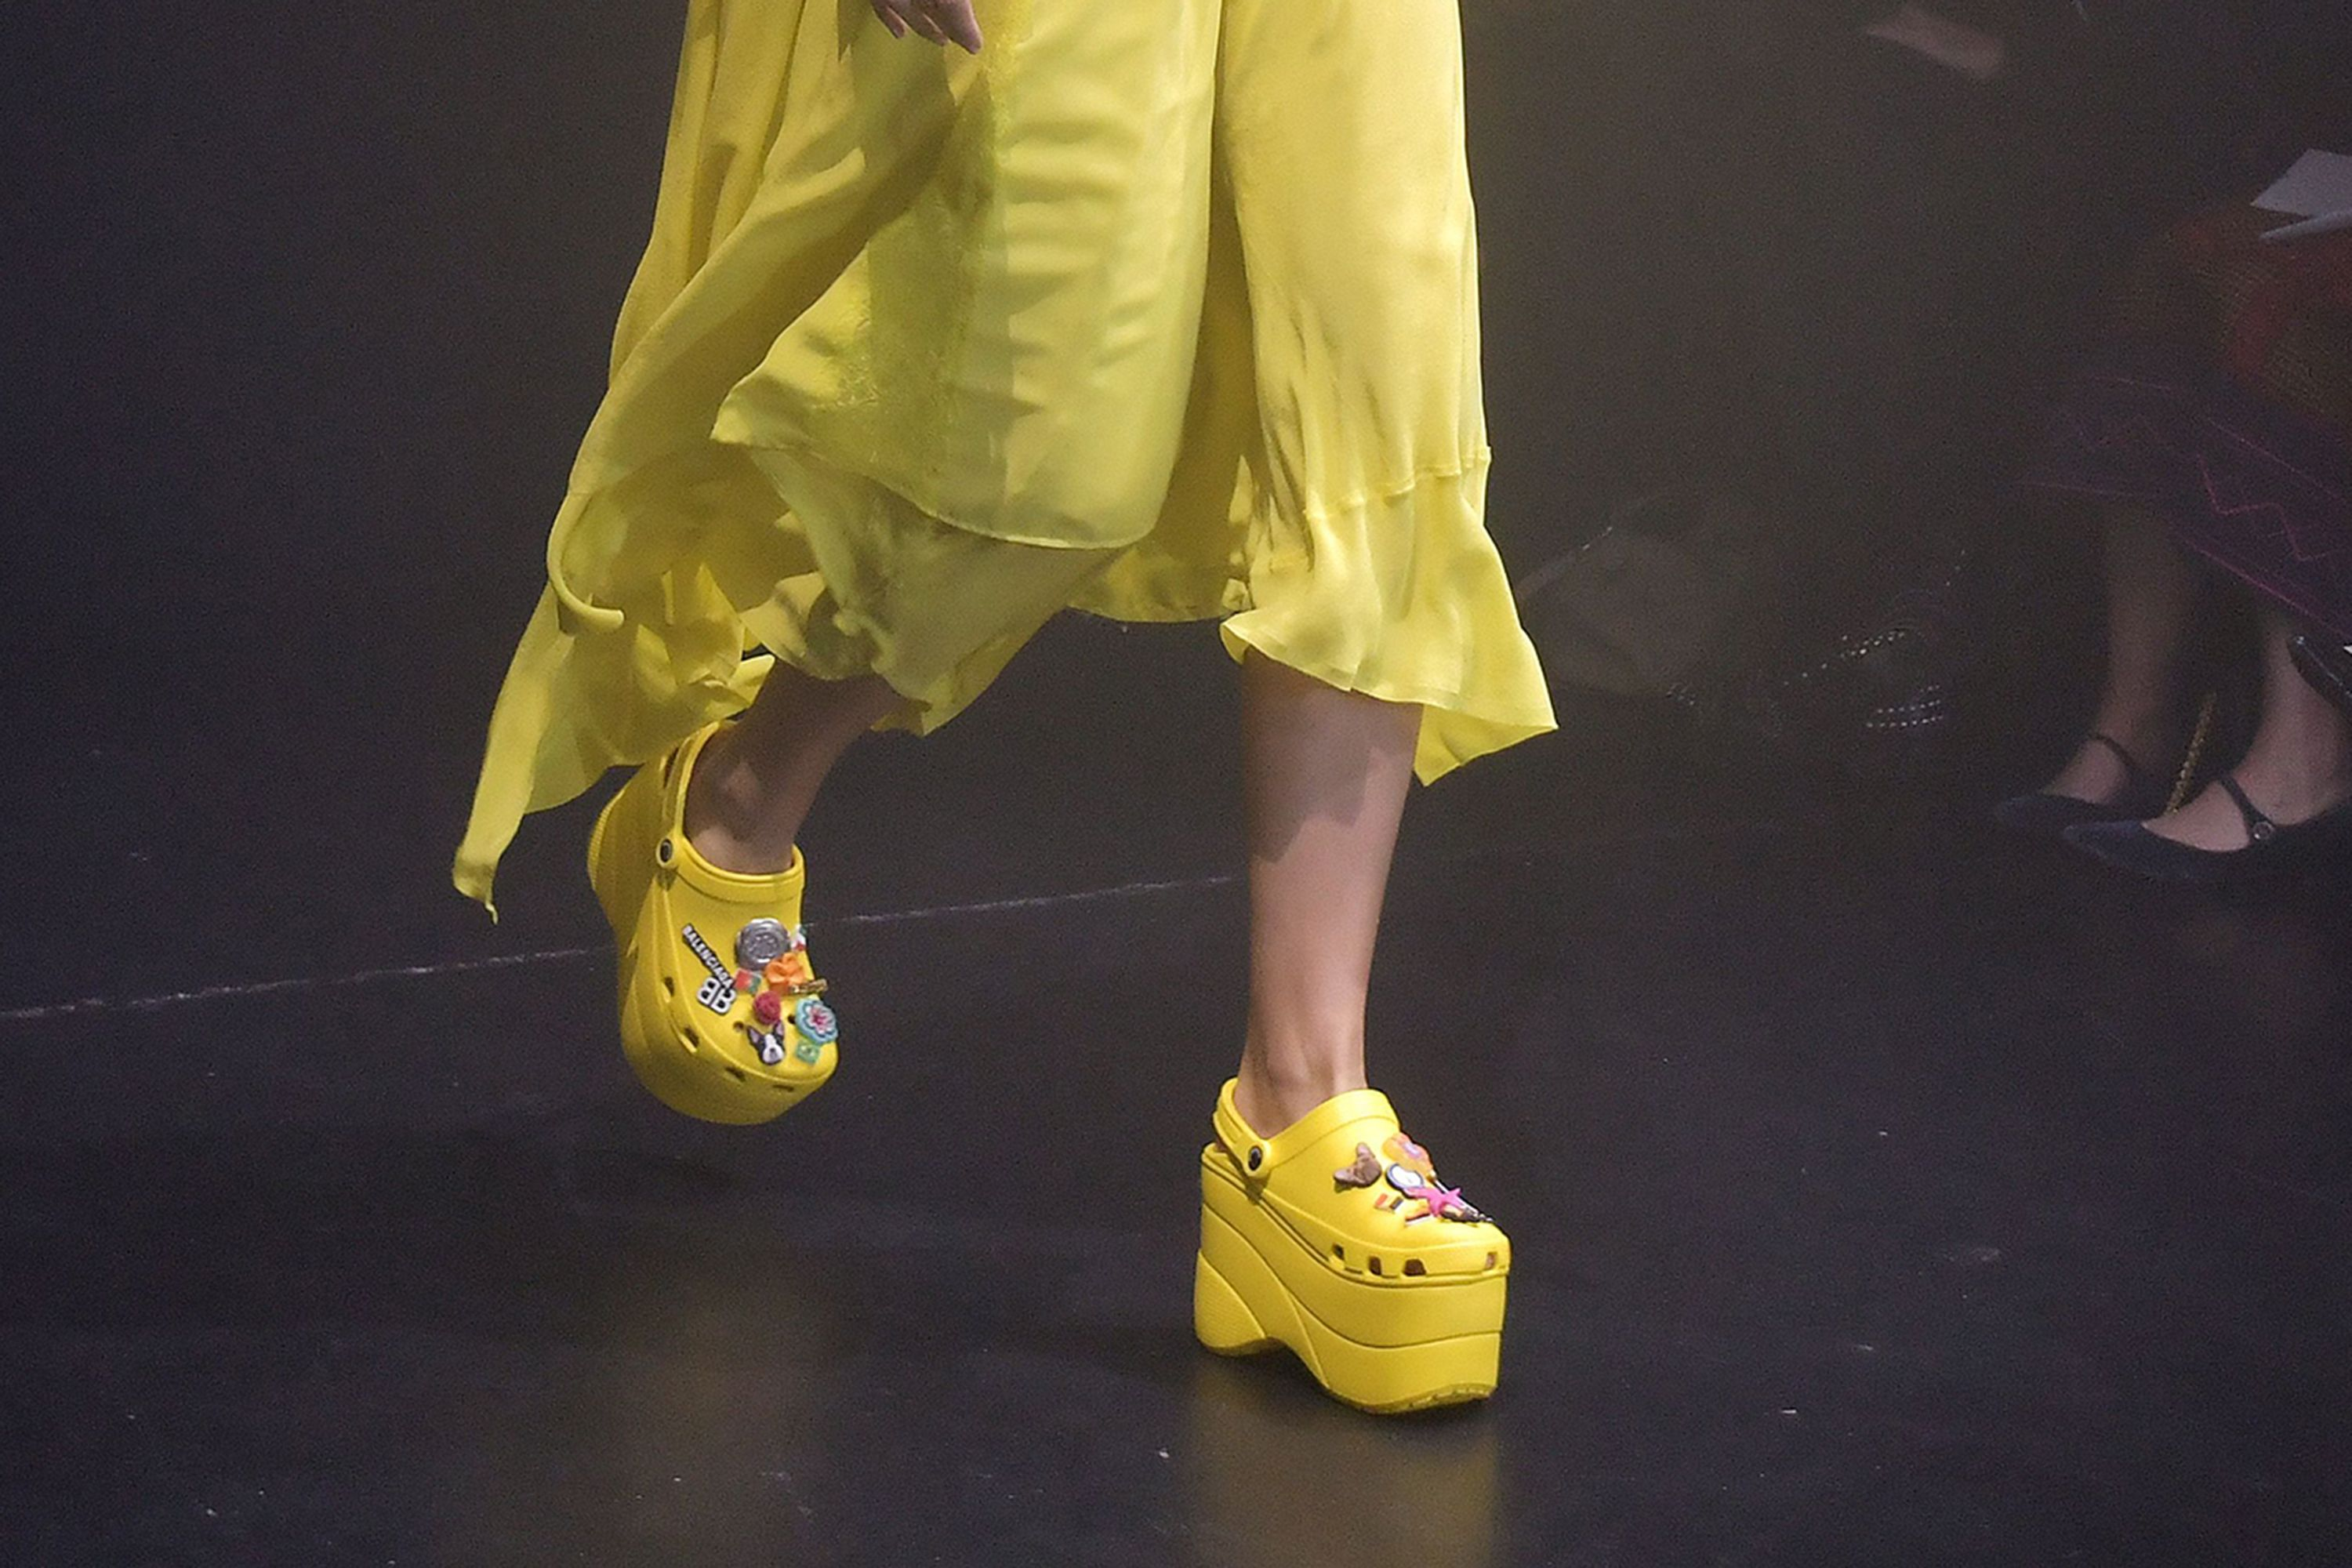 d3c3f7c78e7 Balenciaga s £600 platform Crocs sold out before they were even released